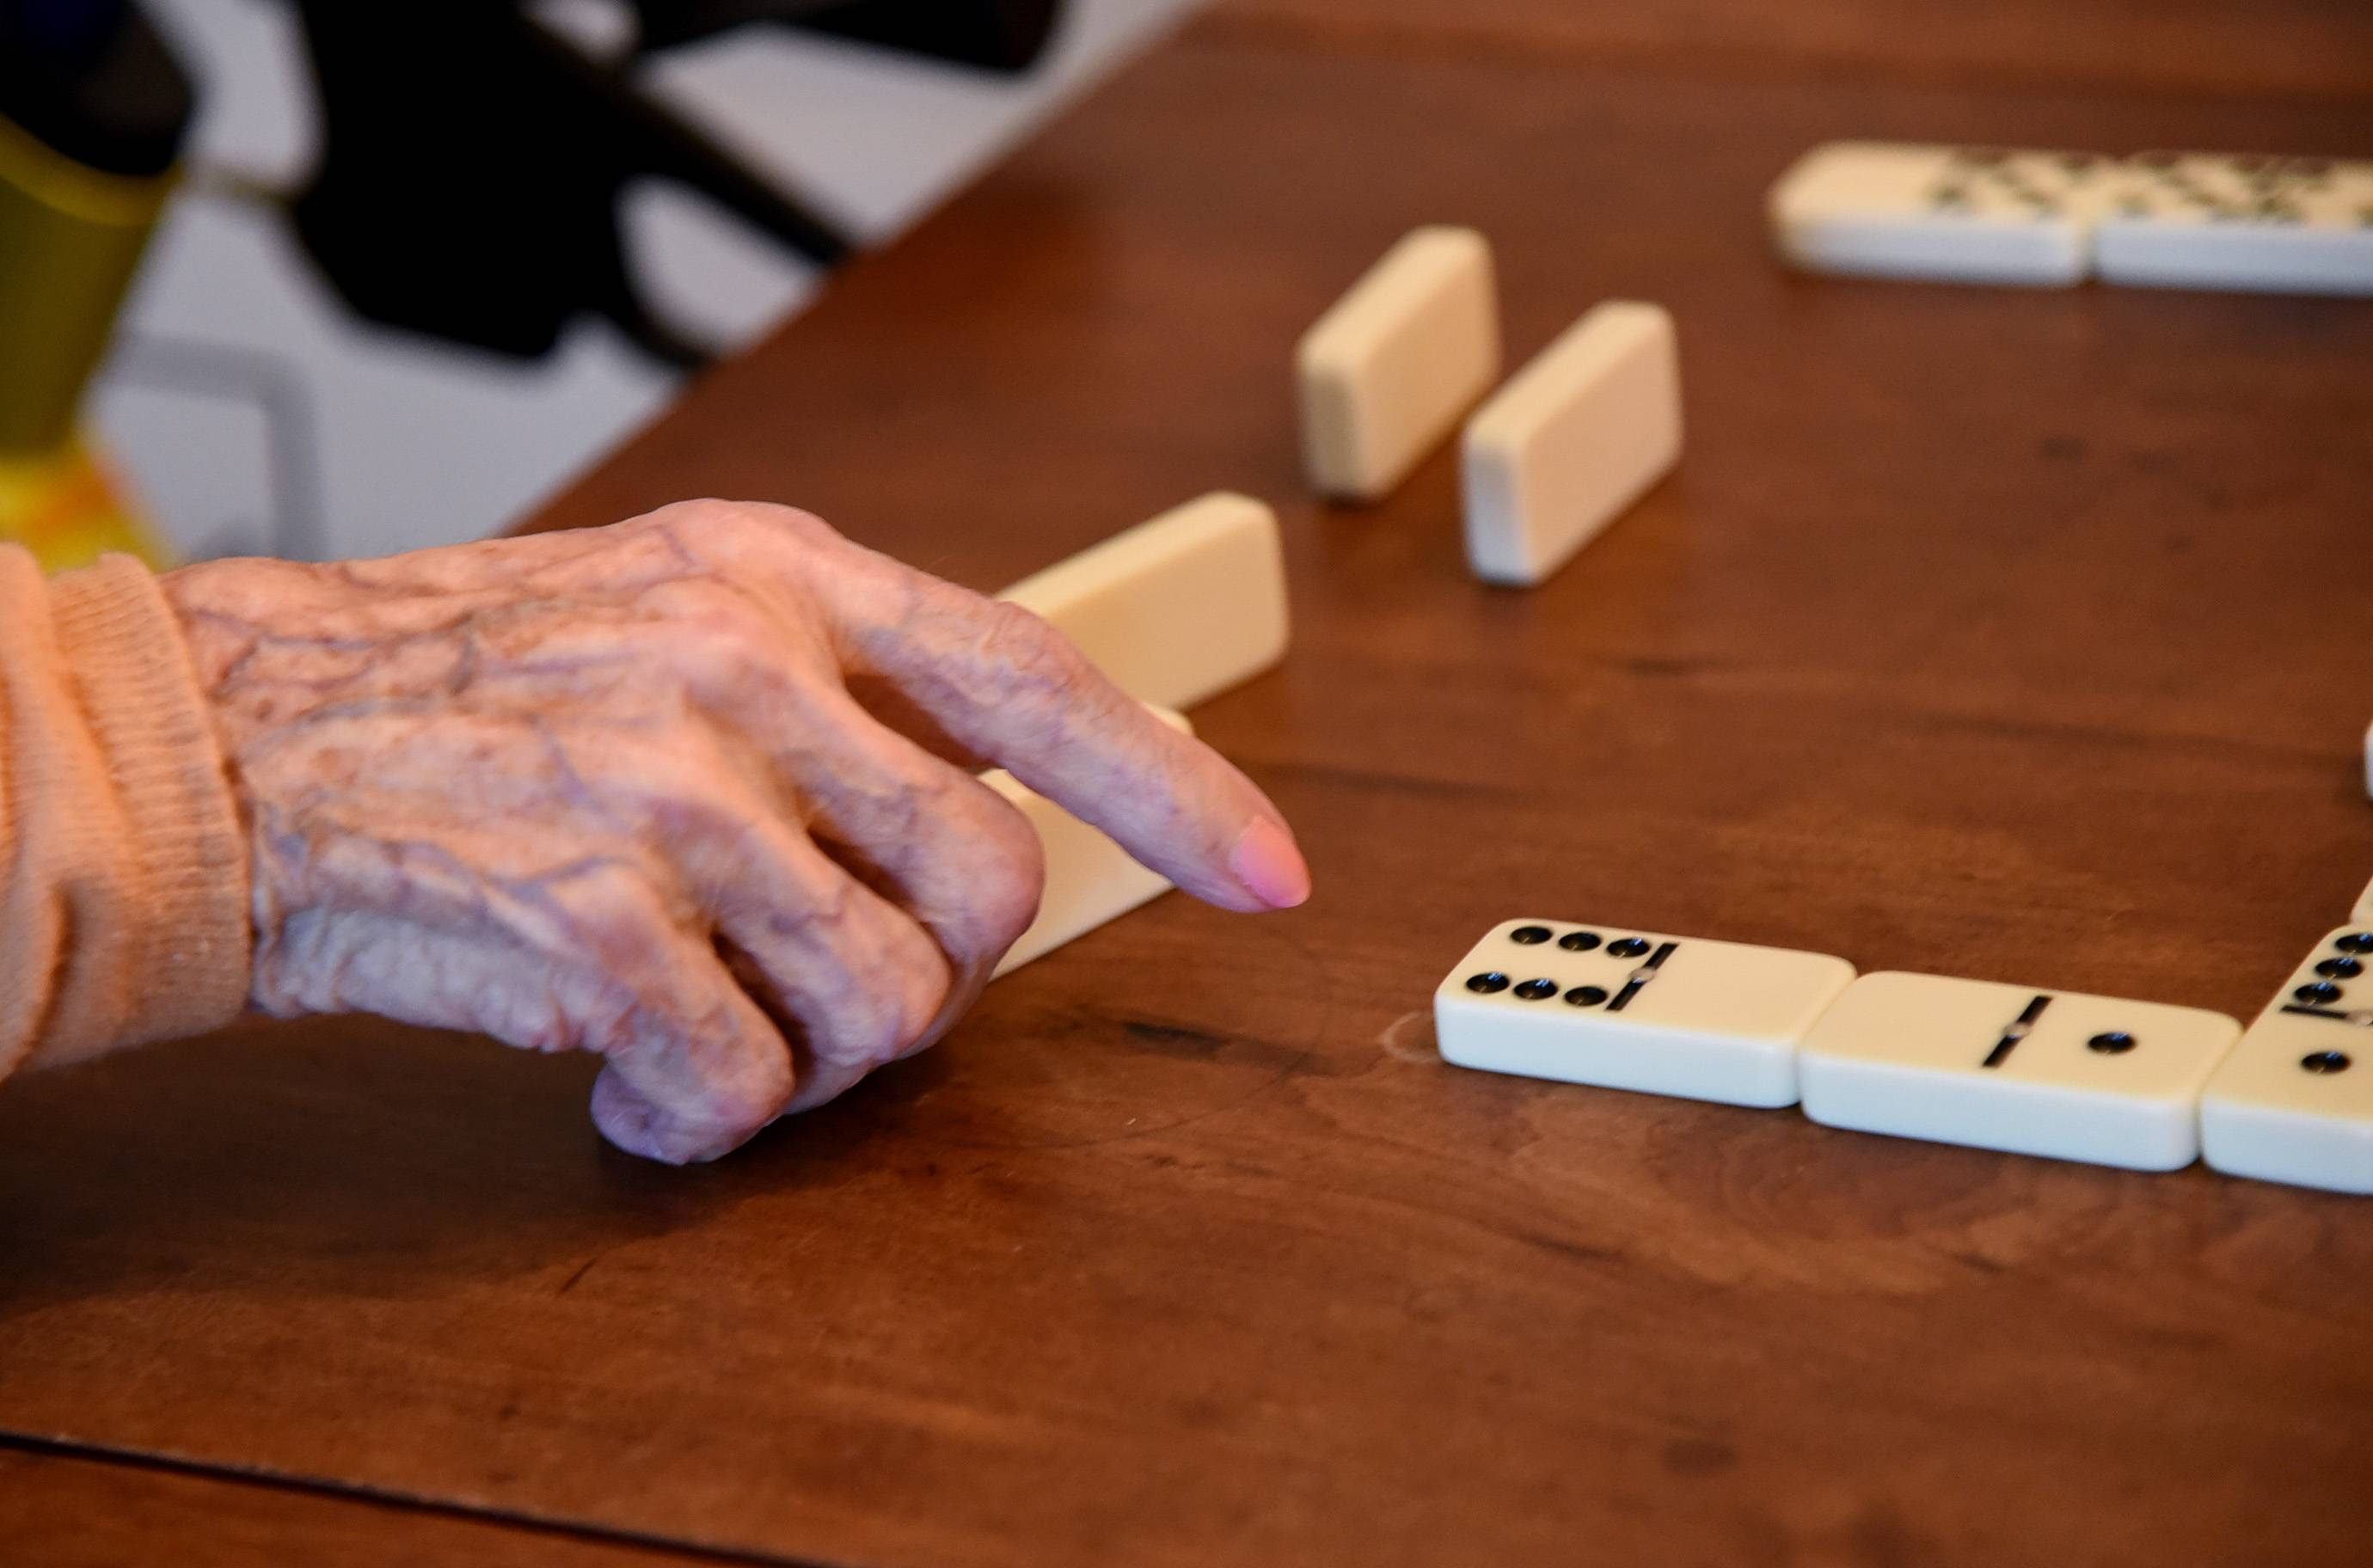 Lois Arbanas, who turns 110 on Dec. 1, plays dominoes at her Arlington Heights home with her daughter, Anne Feichter of Elk Grove Village.